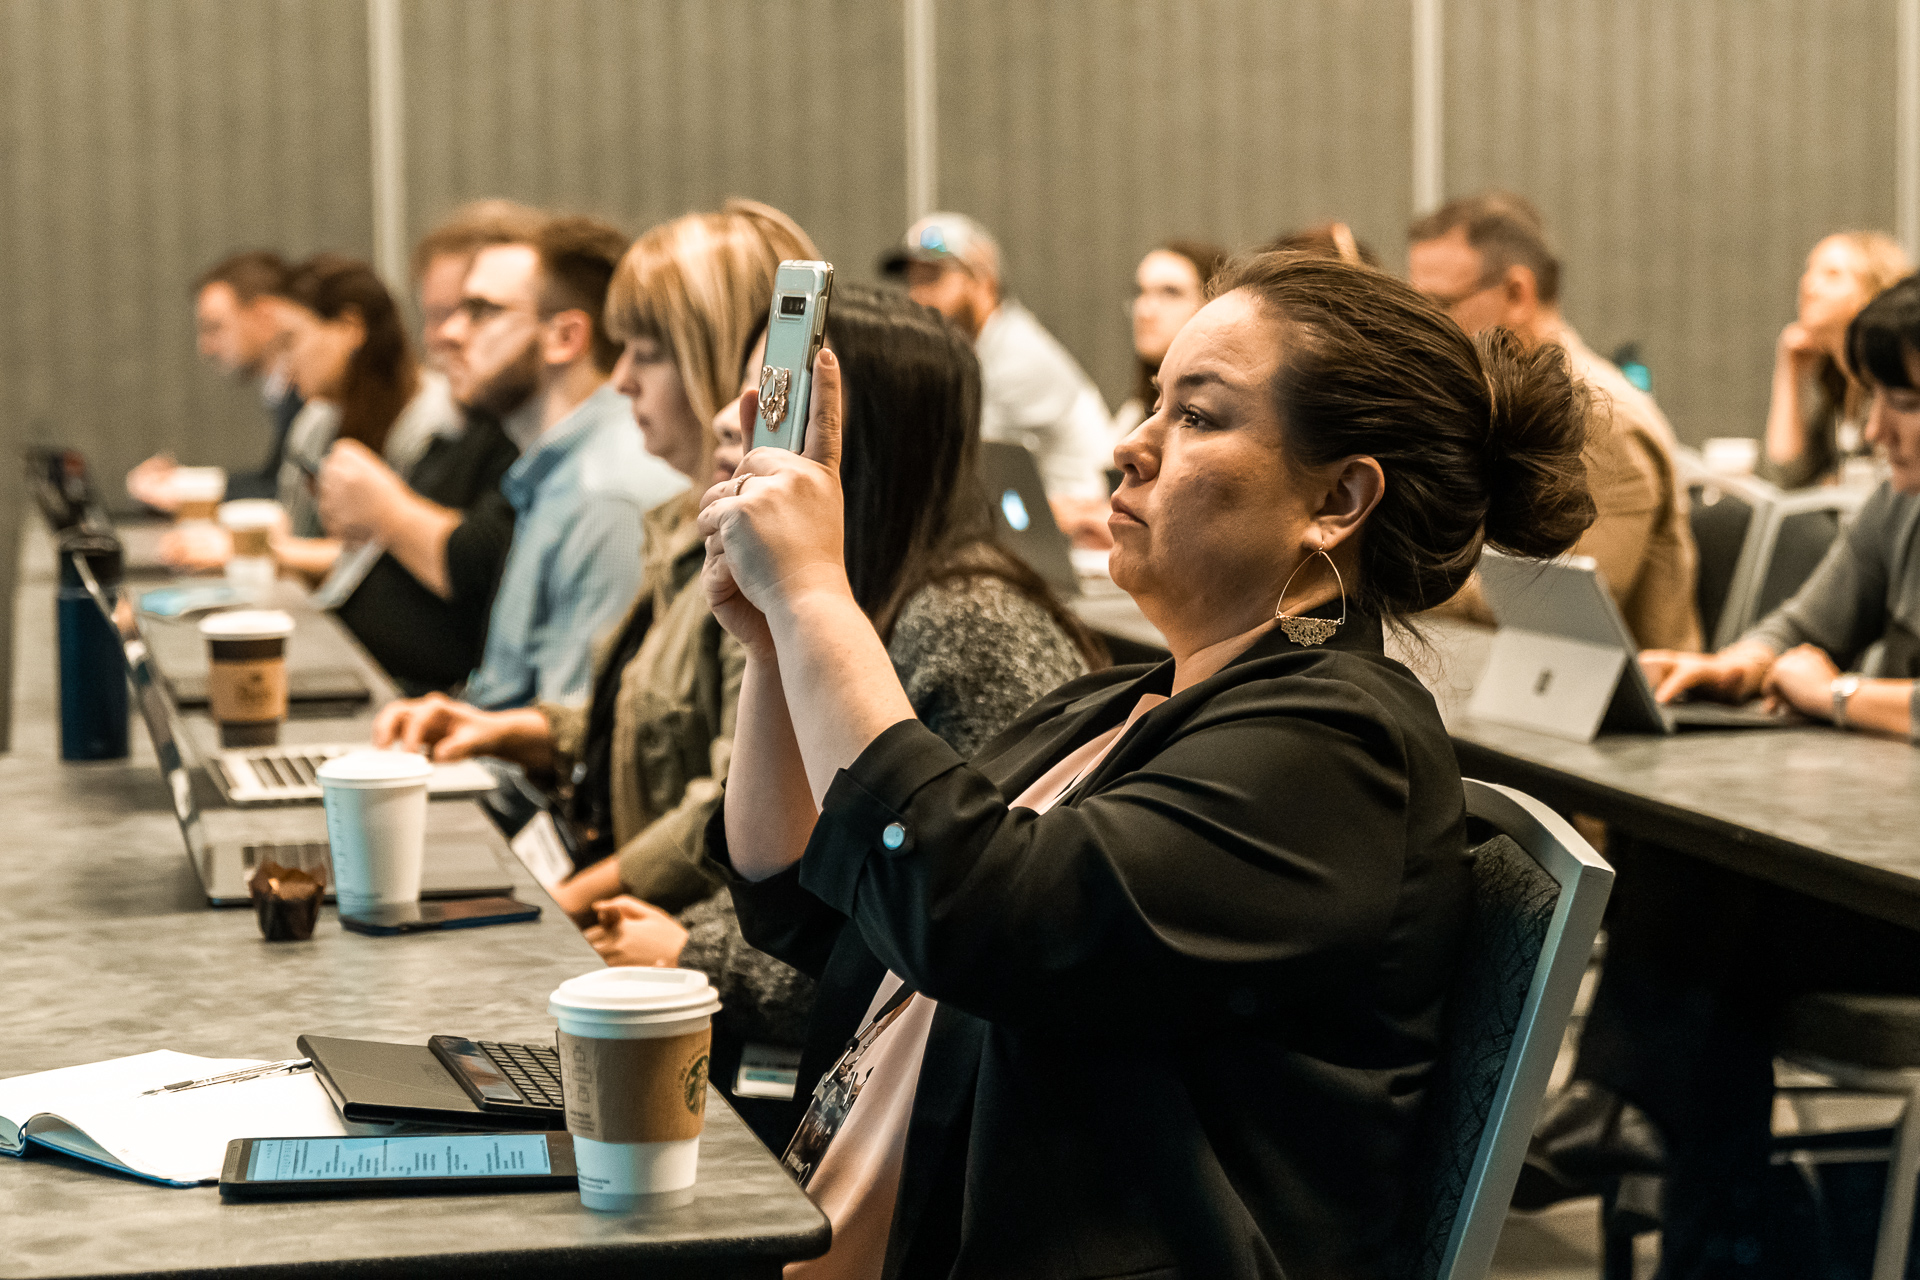 Lady at a conference capturing a photo of the speaker